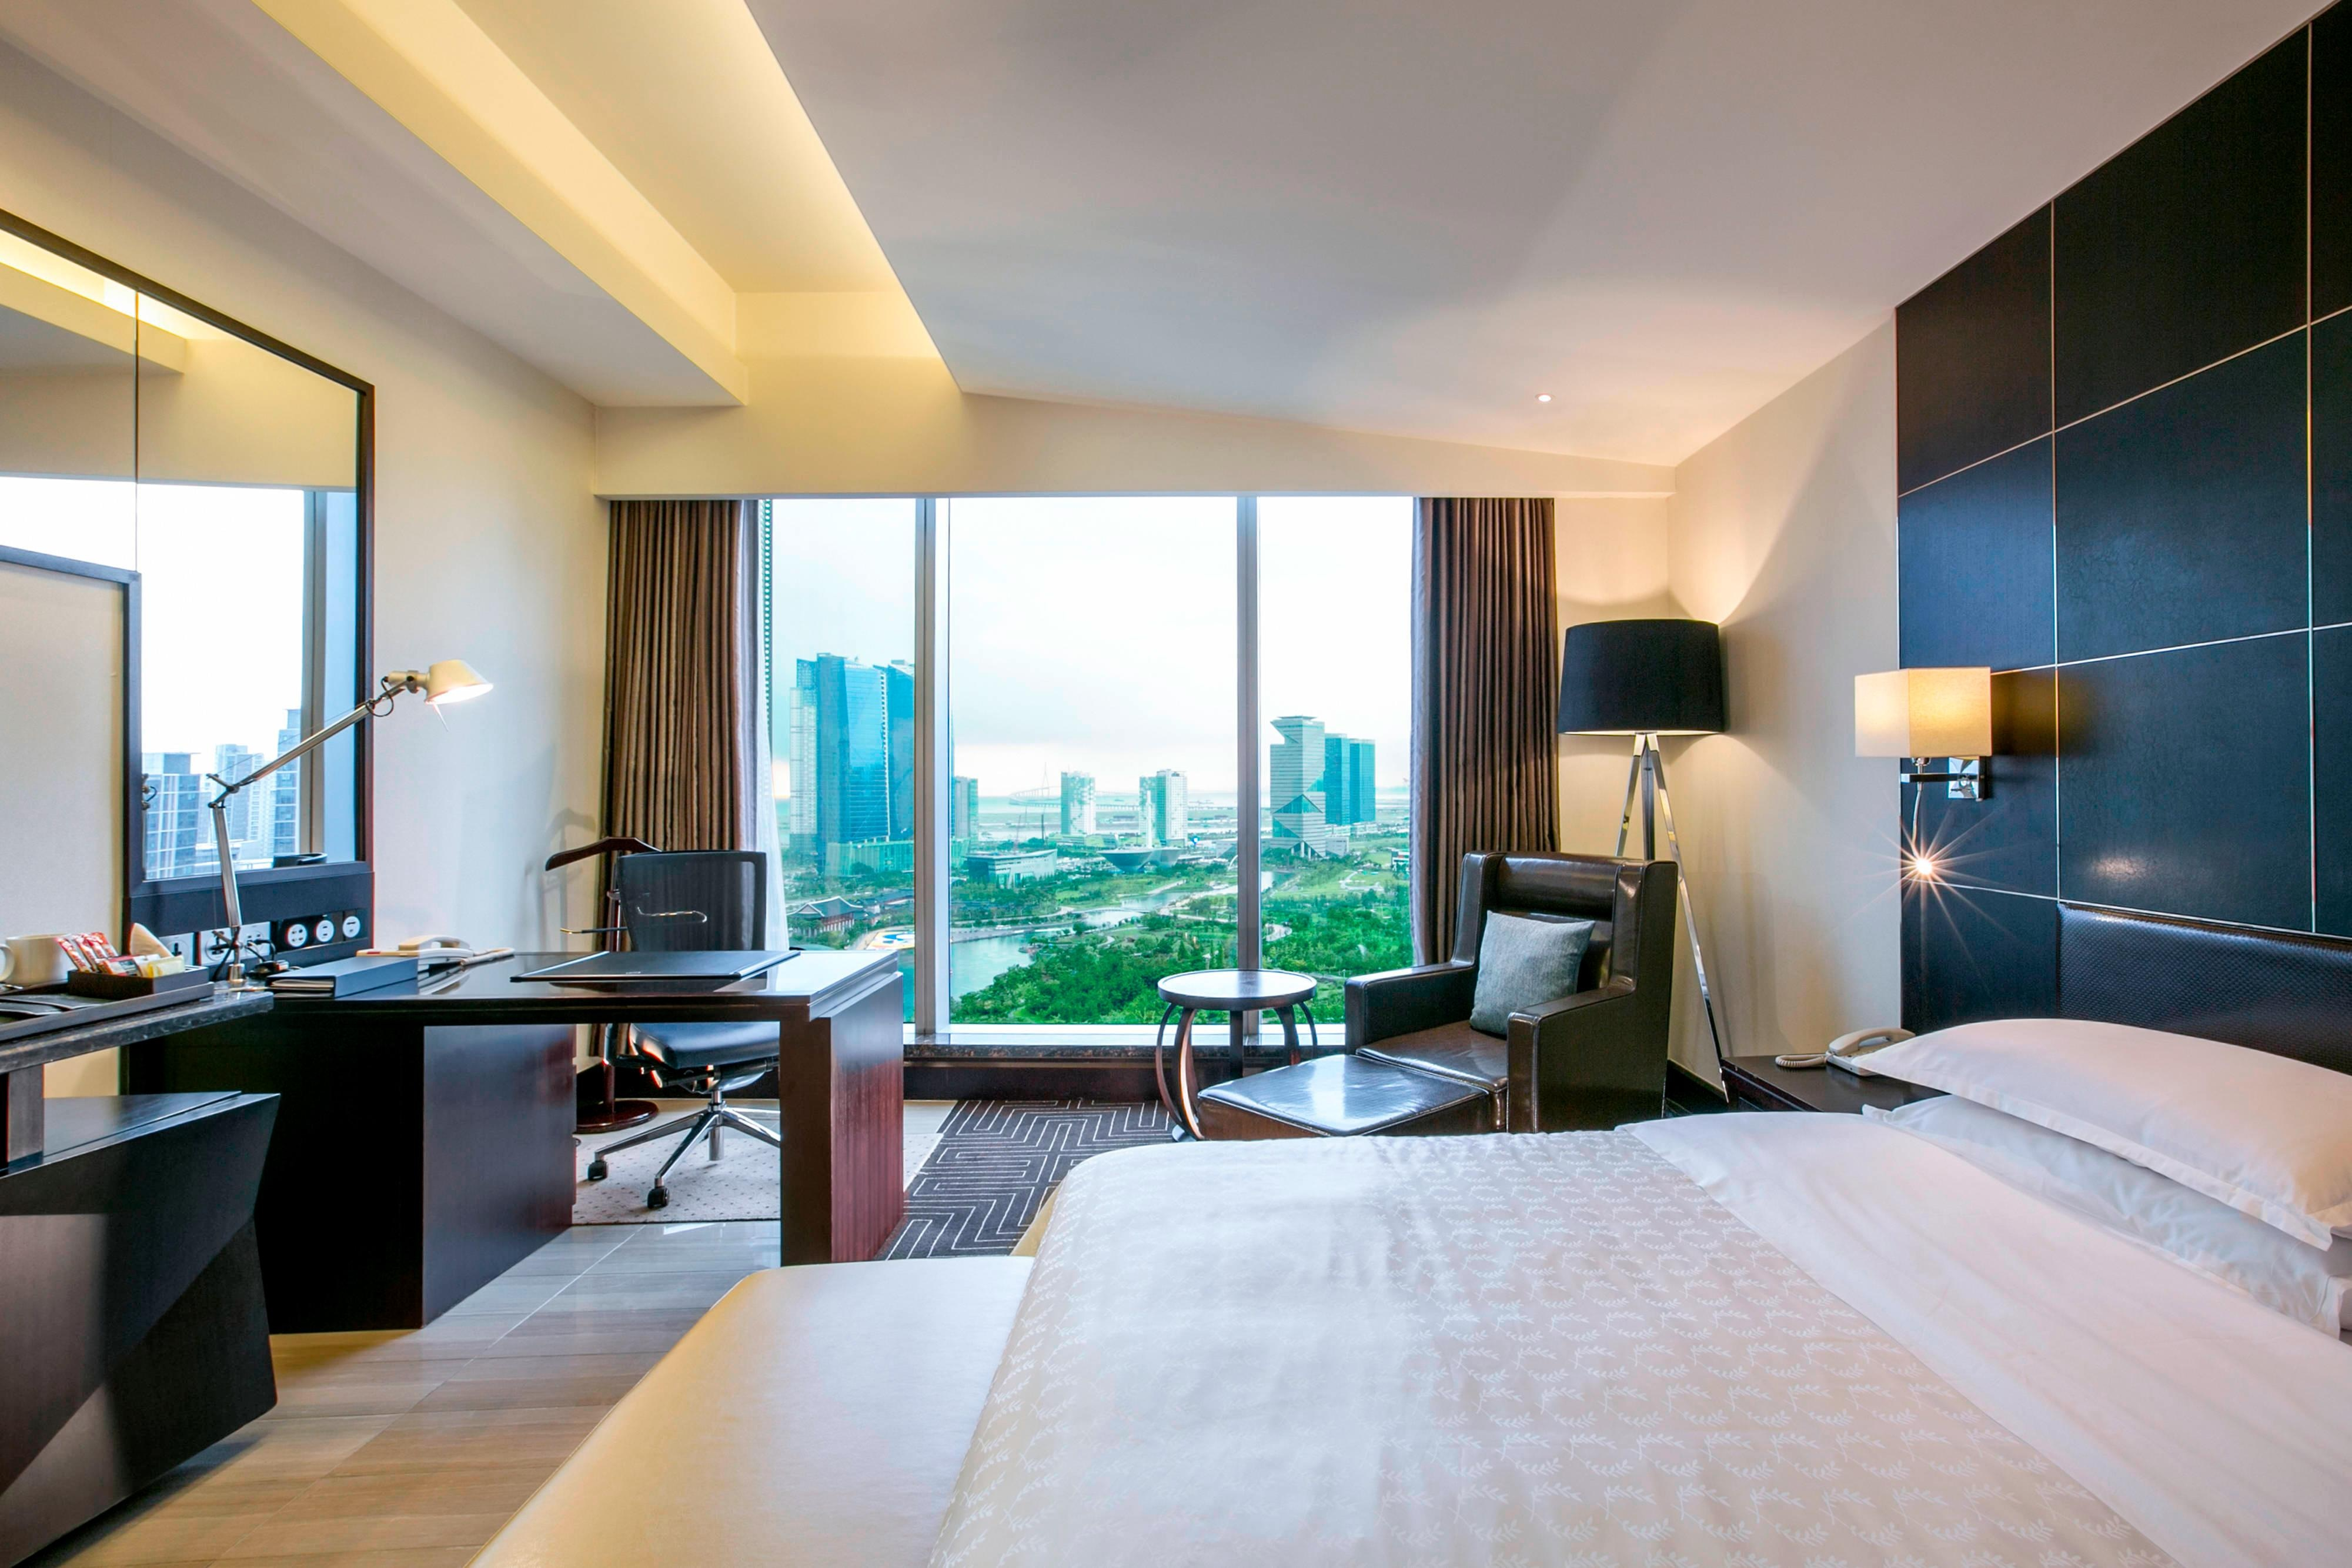 King Club Deluxe Park View Room